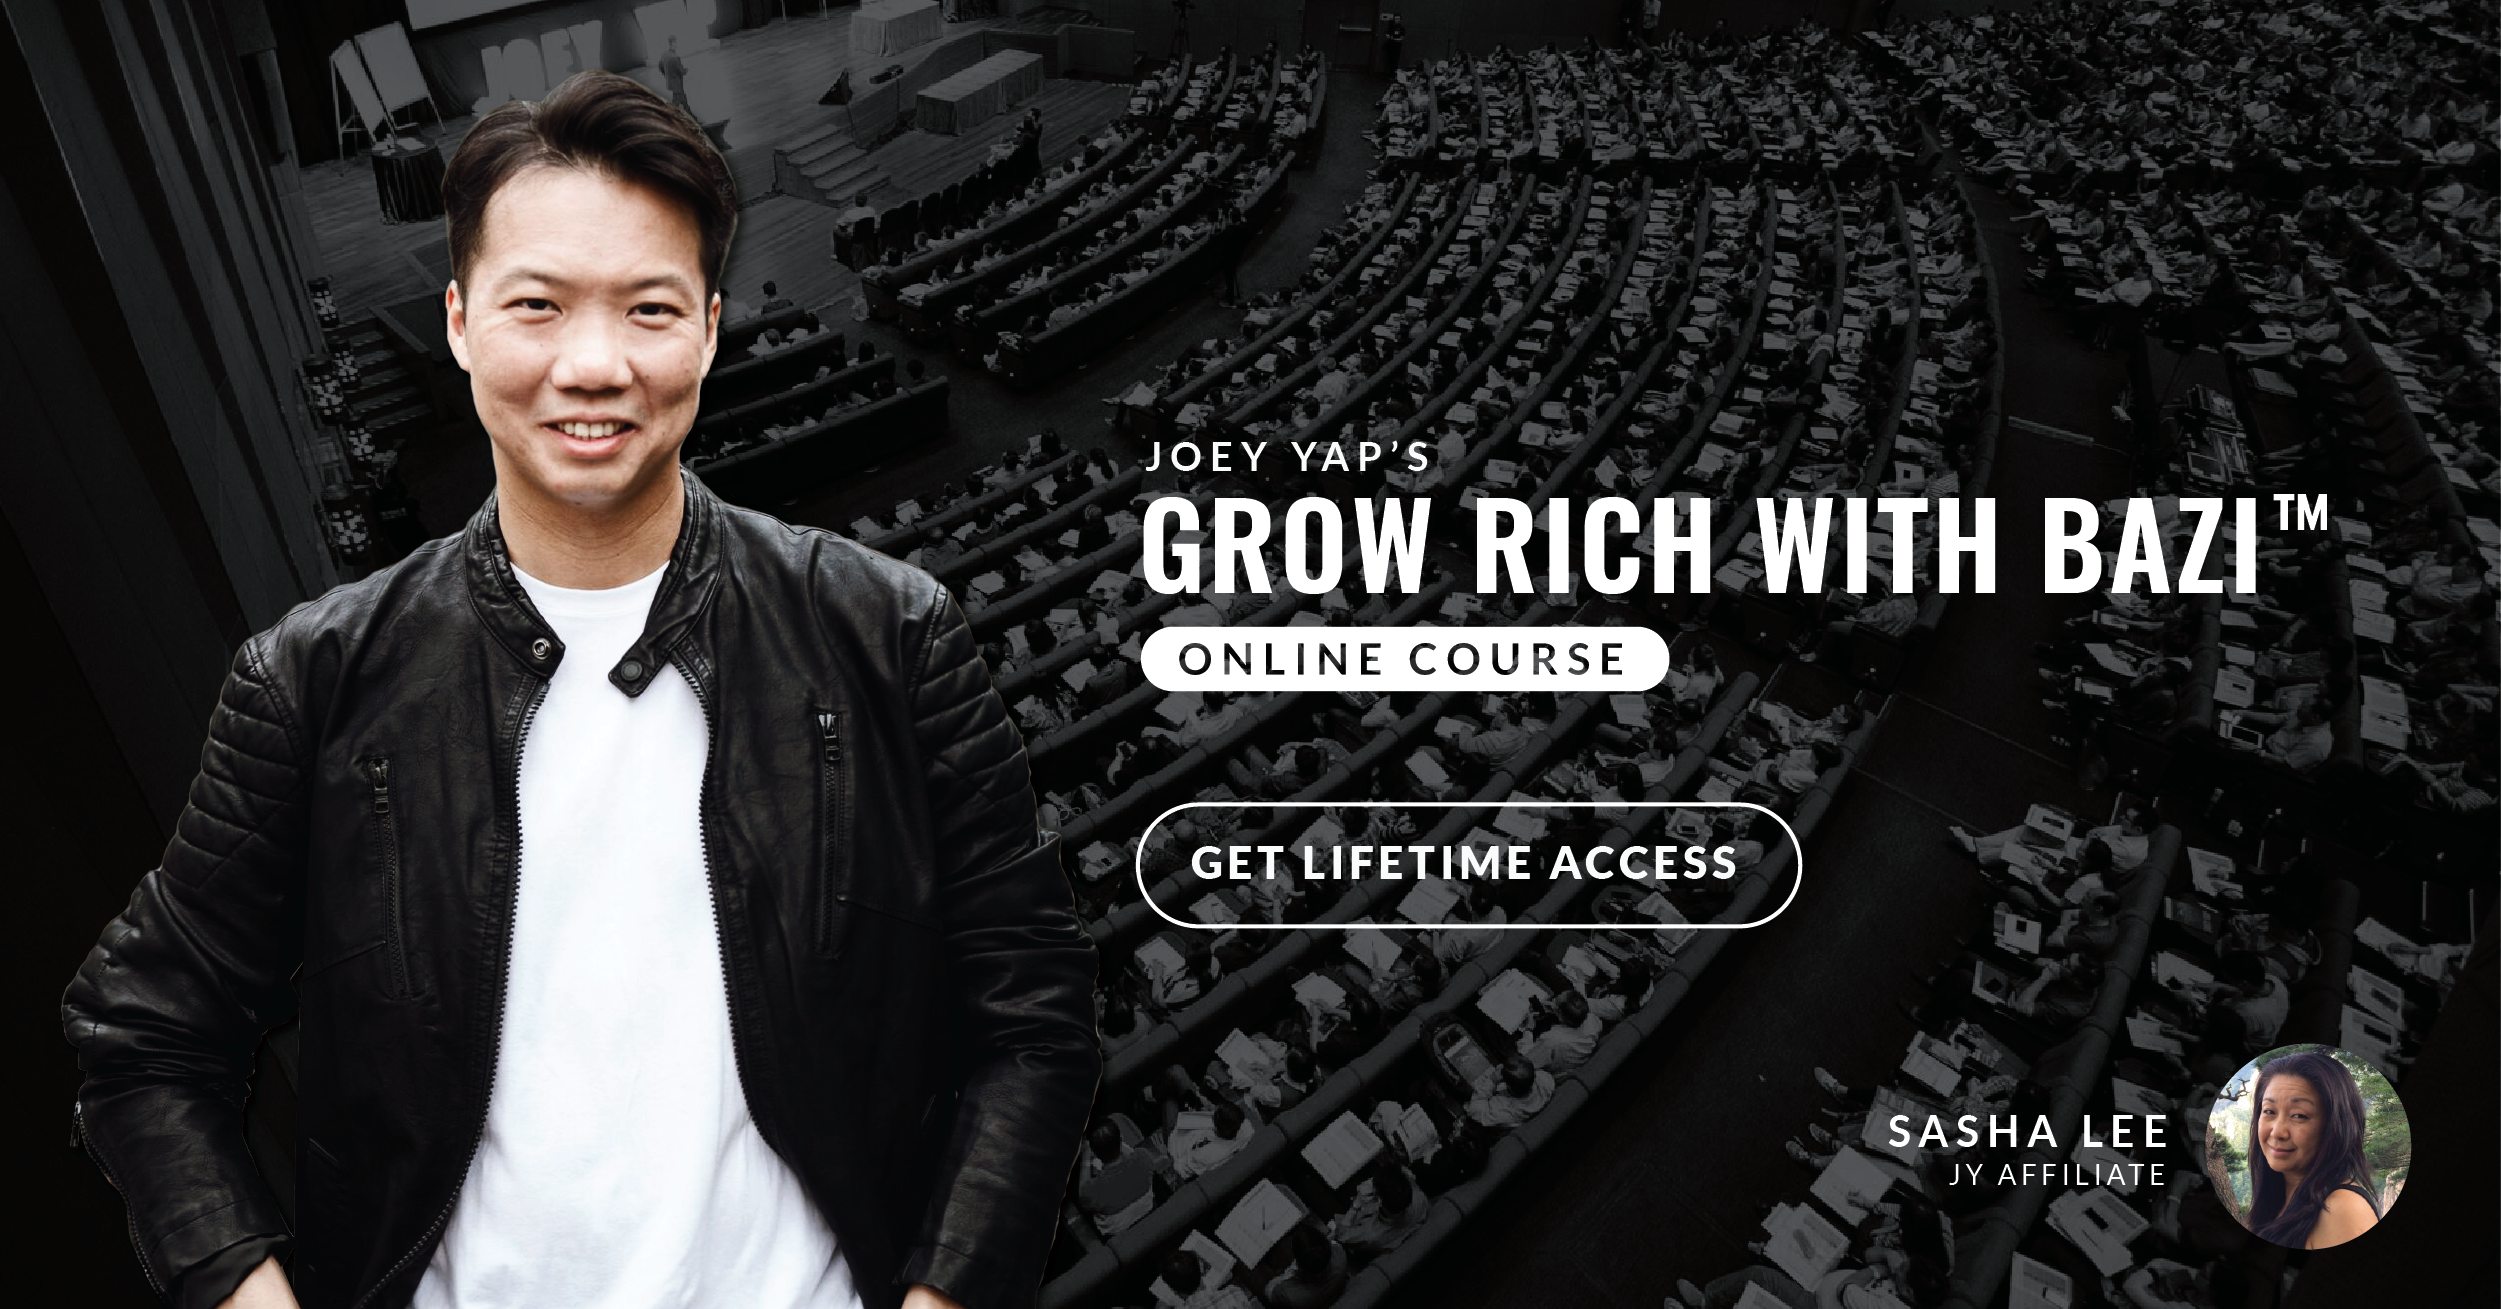 Joey Yap grow rich